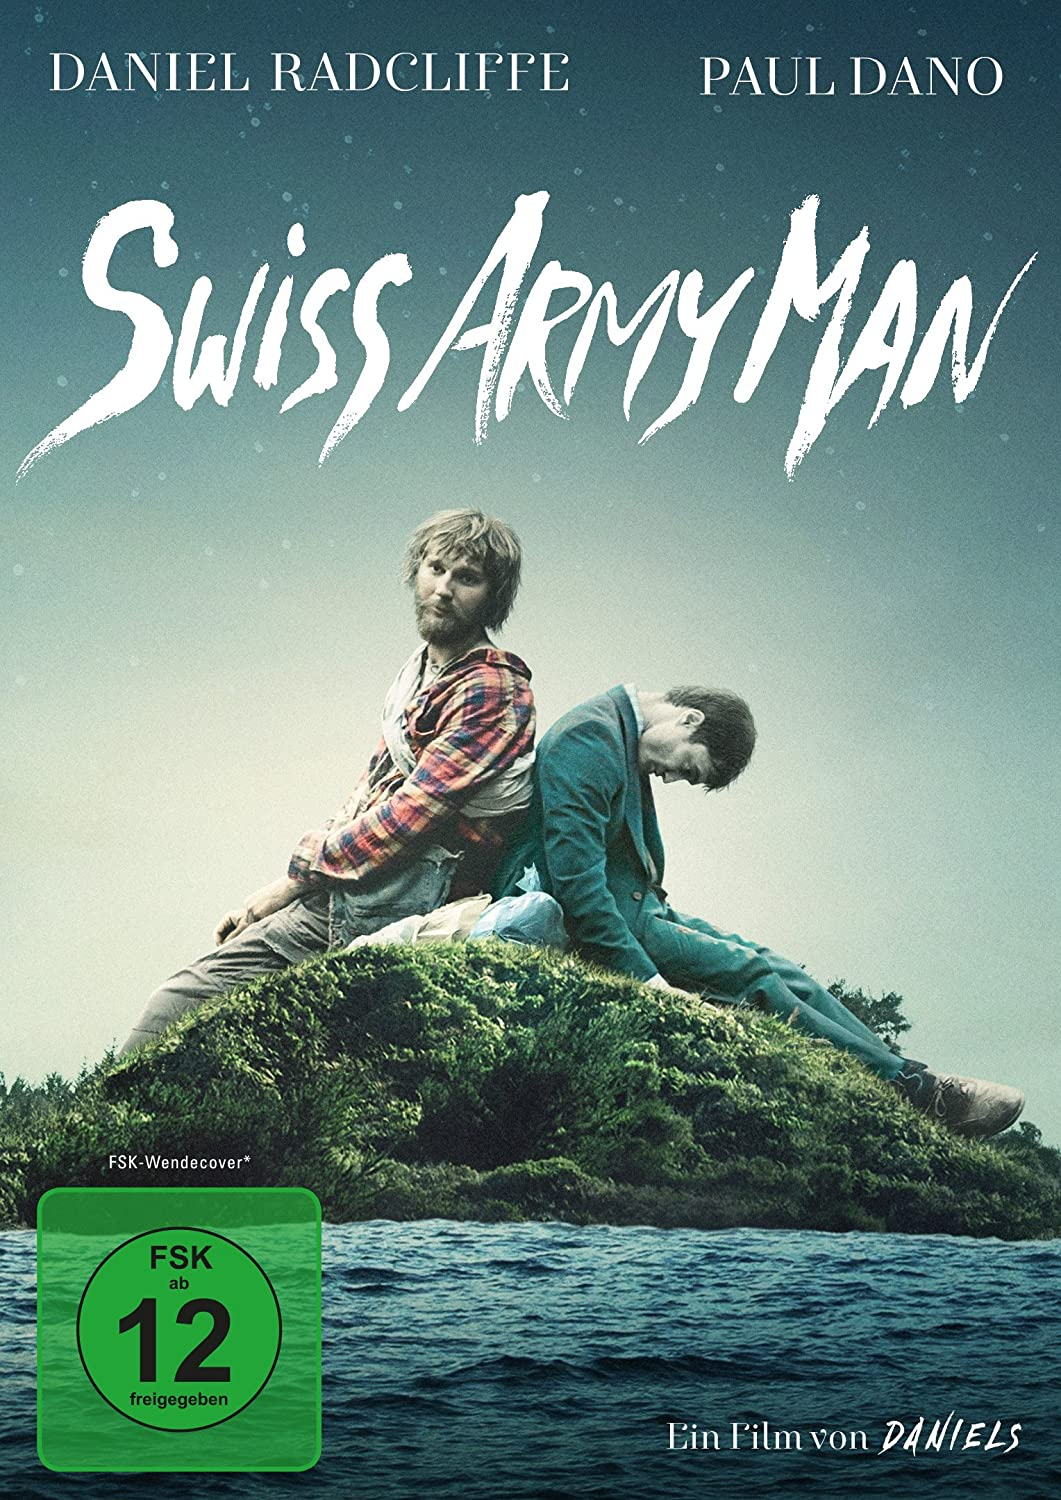 Filmtipps - Swiss Army Man 2016